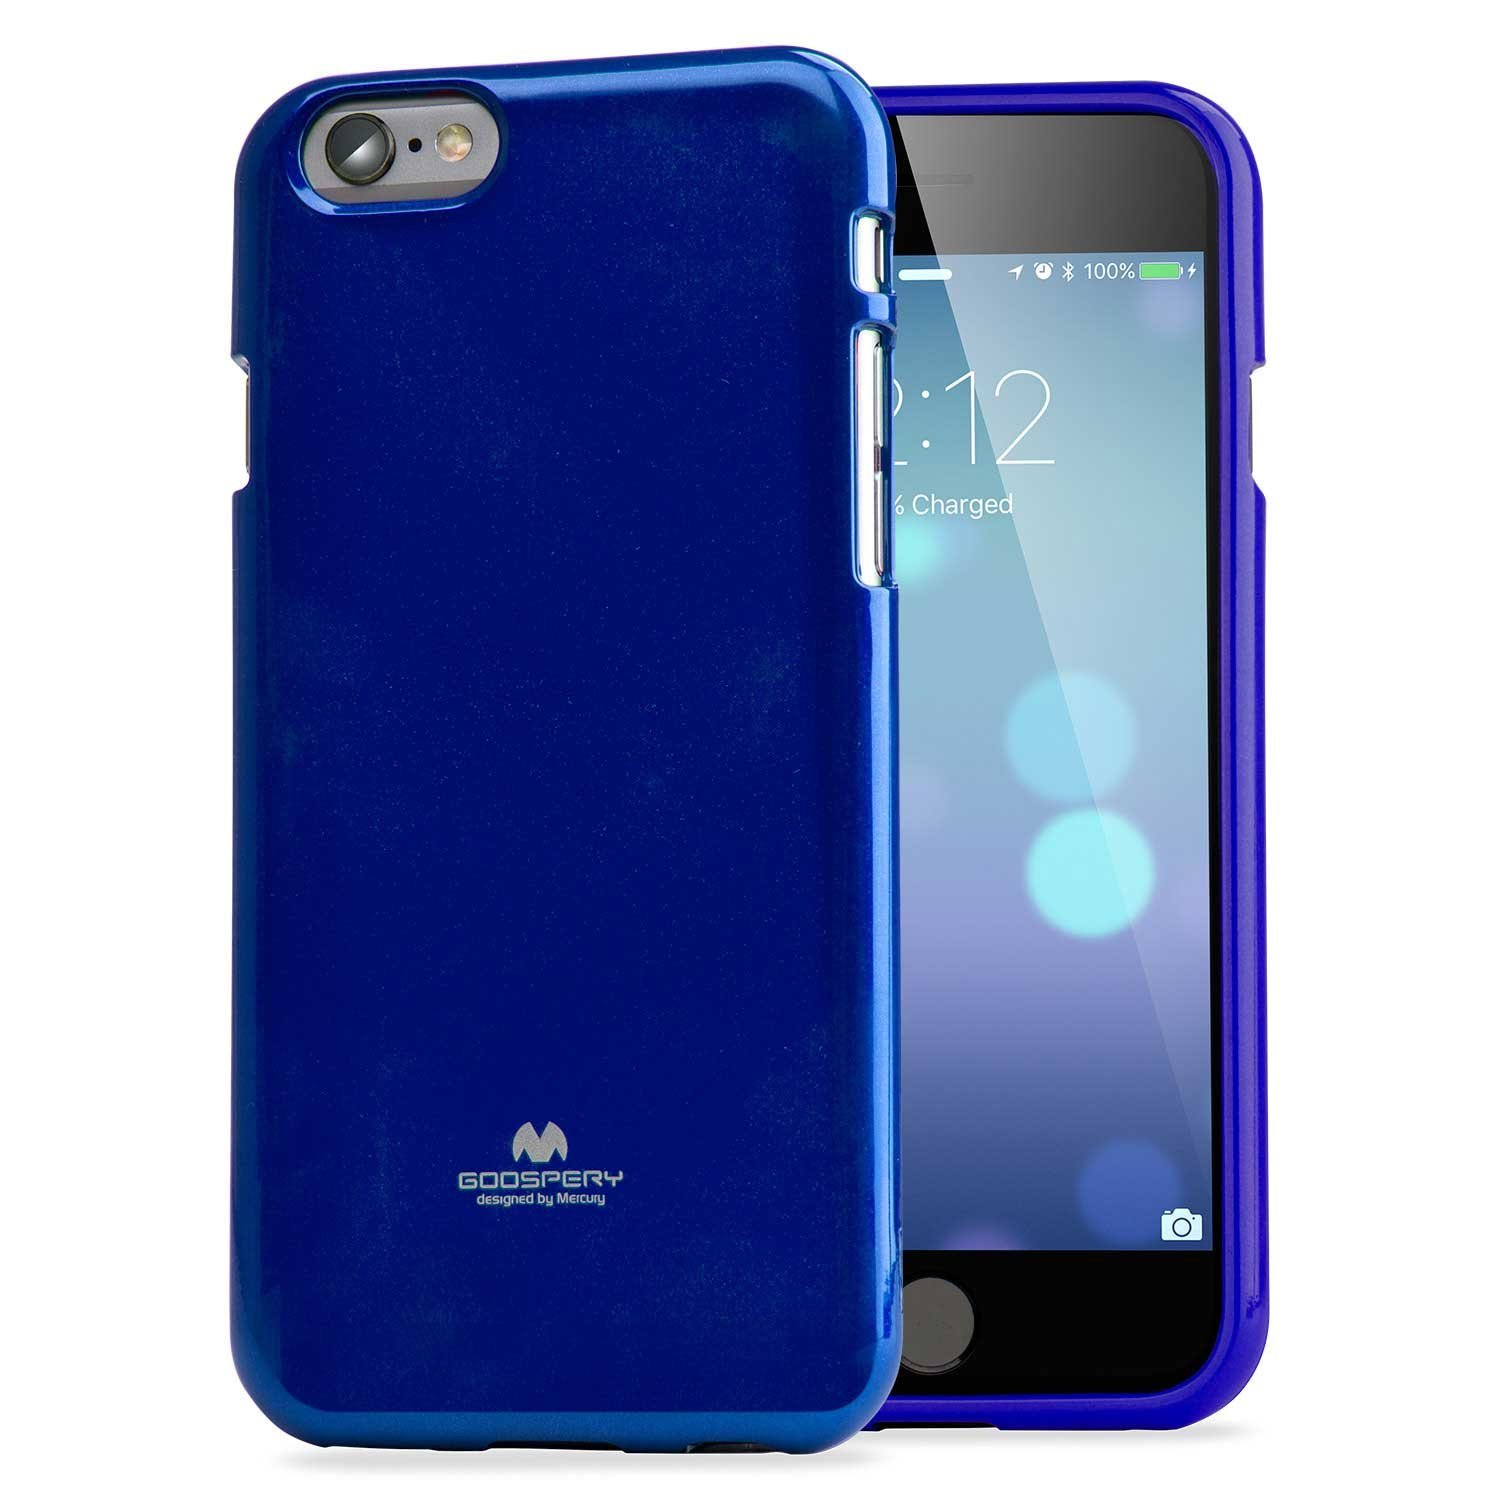 Pouzdro / kryt pro Apple iPhone 6 / 6S - Mercury, Jelly Case Blue